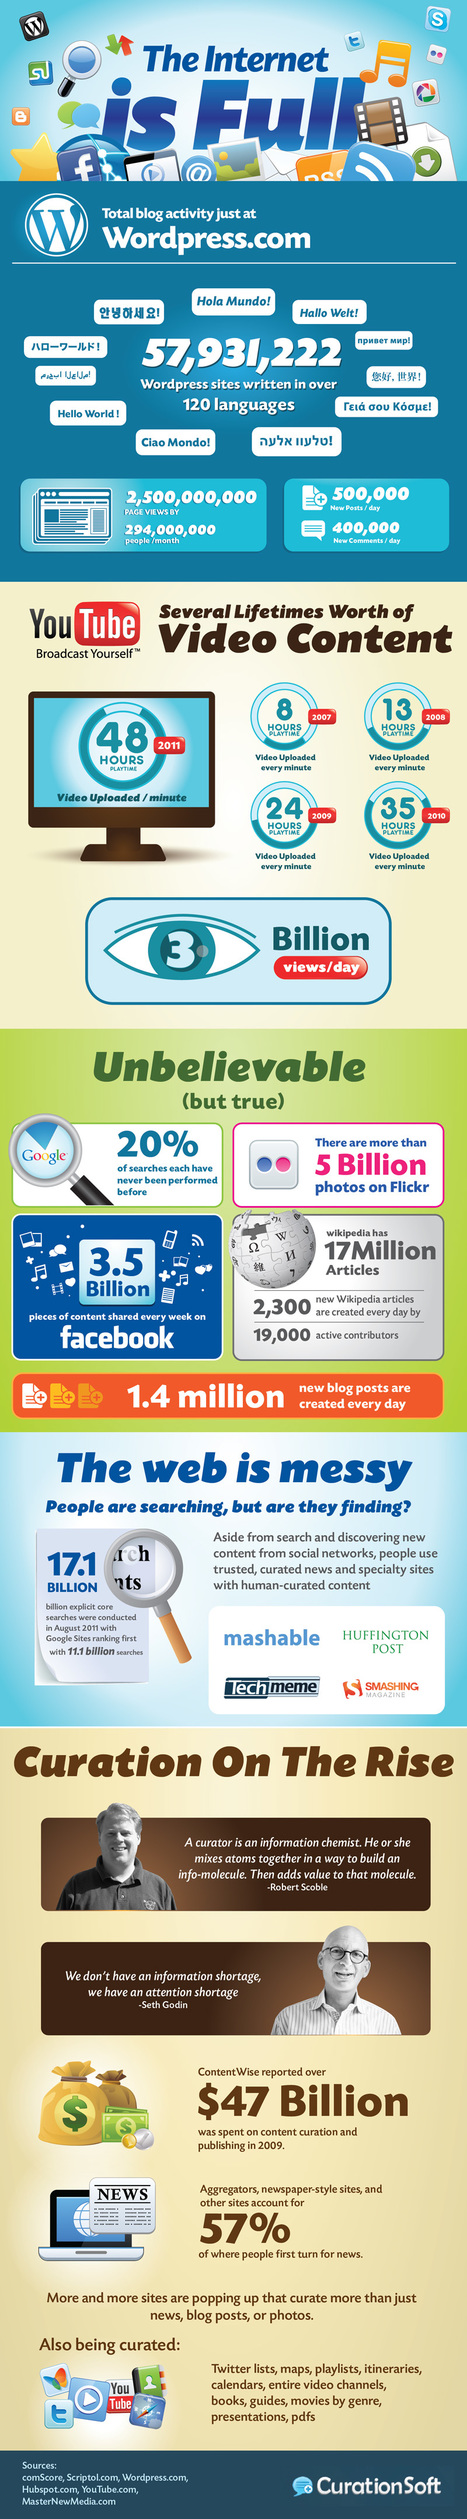 You Are Full of Web! Curate Yourself. | Visual.ly [Postergraphic] | Content Curation Marketing | Scoop.it